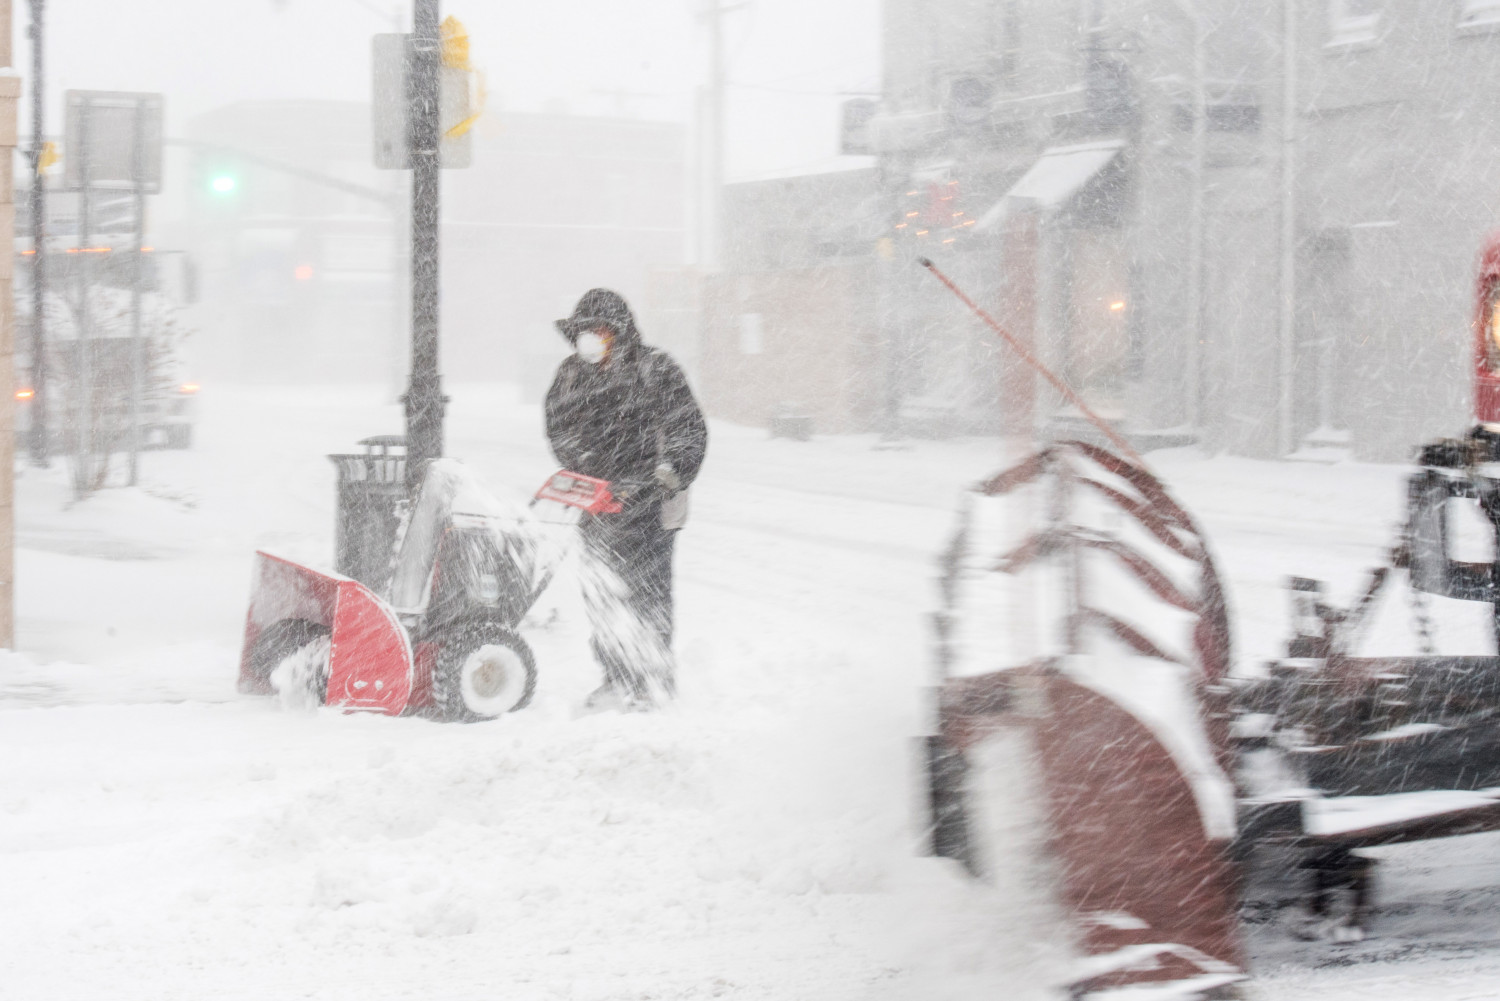 People plow snow in Patchogue, New York as a blizzard hits the Northeastern United States, January 4, 2018. (Andrew Theodorakis/Getty Images)